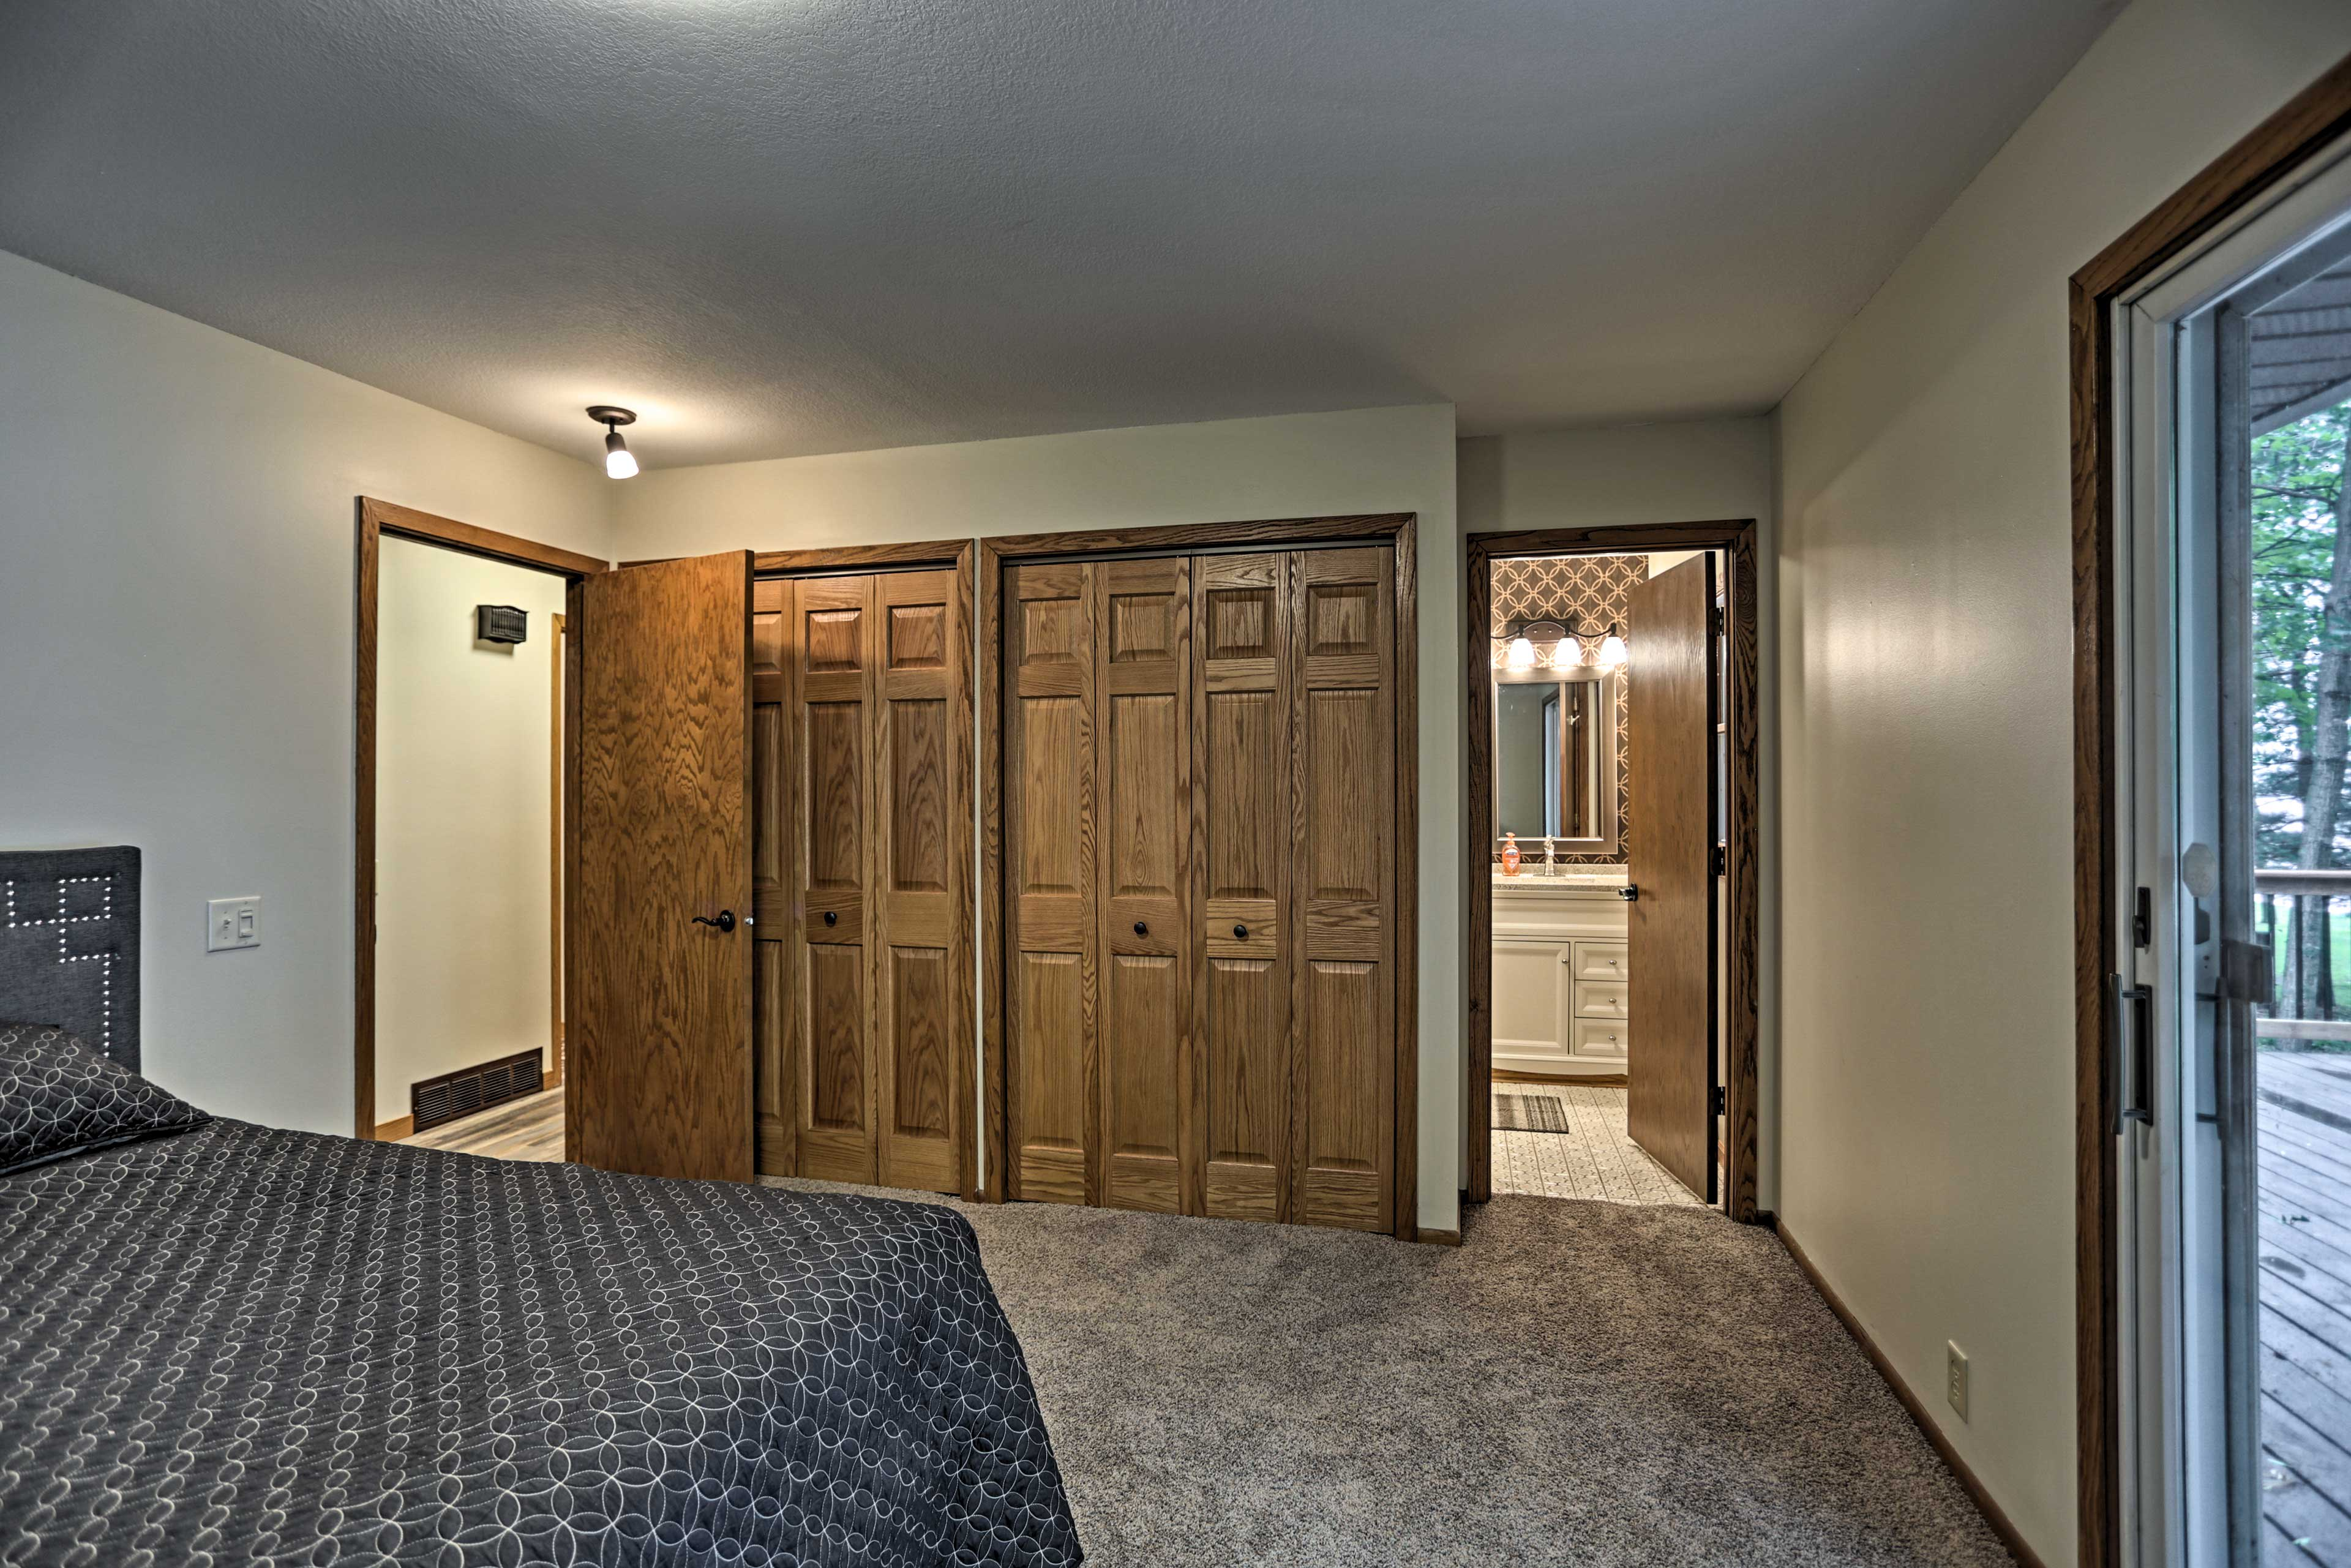 You'll have direct access to the deck through the sliding glass doors.